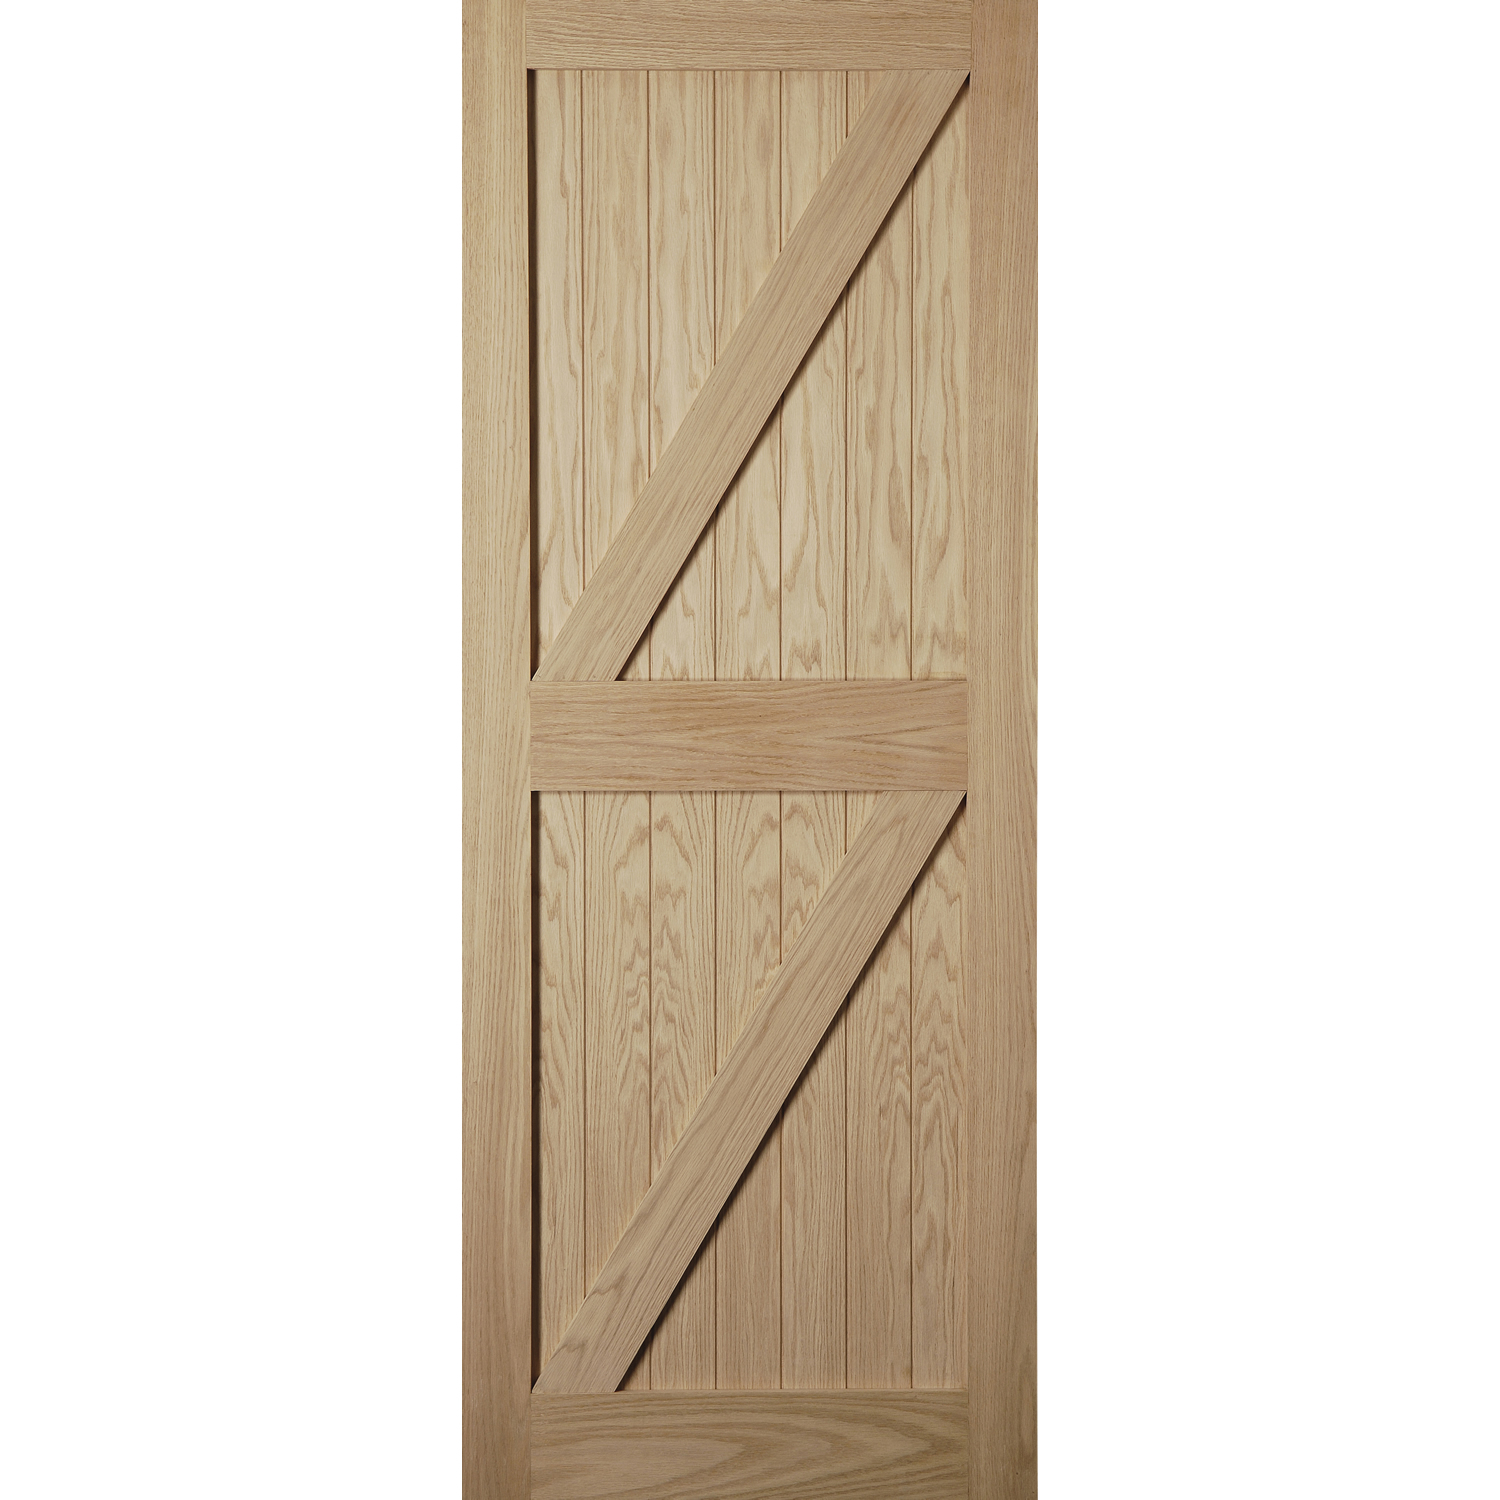 Framed Door Services - Door Services - Oklahoma